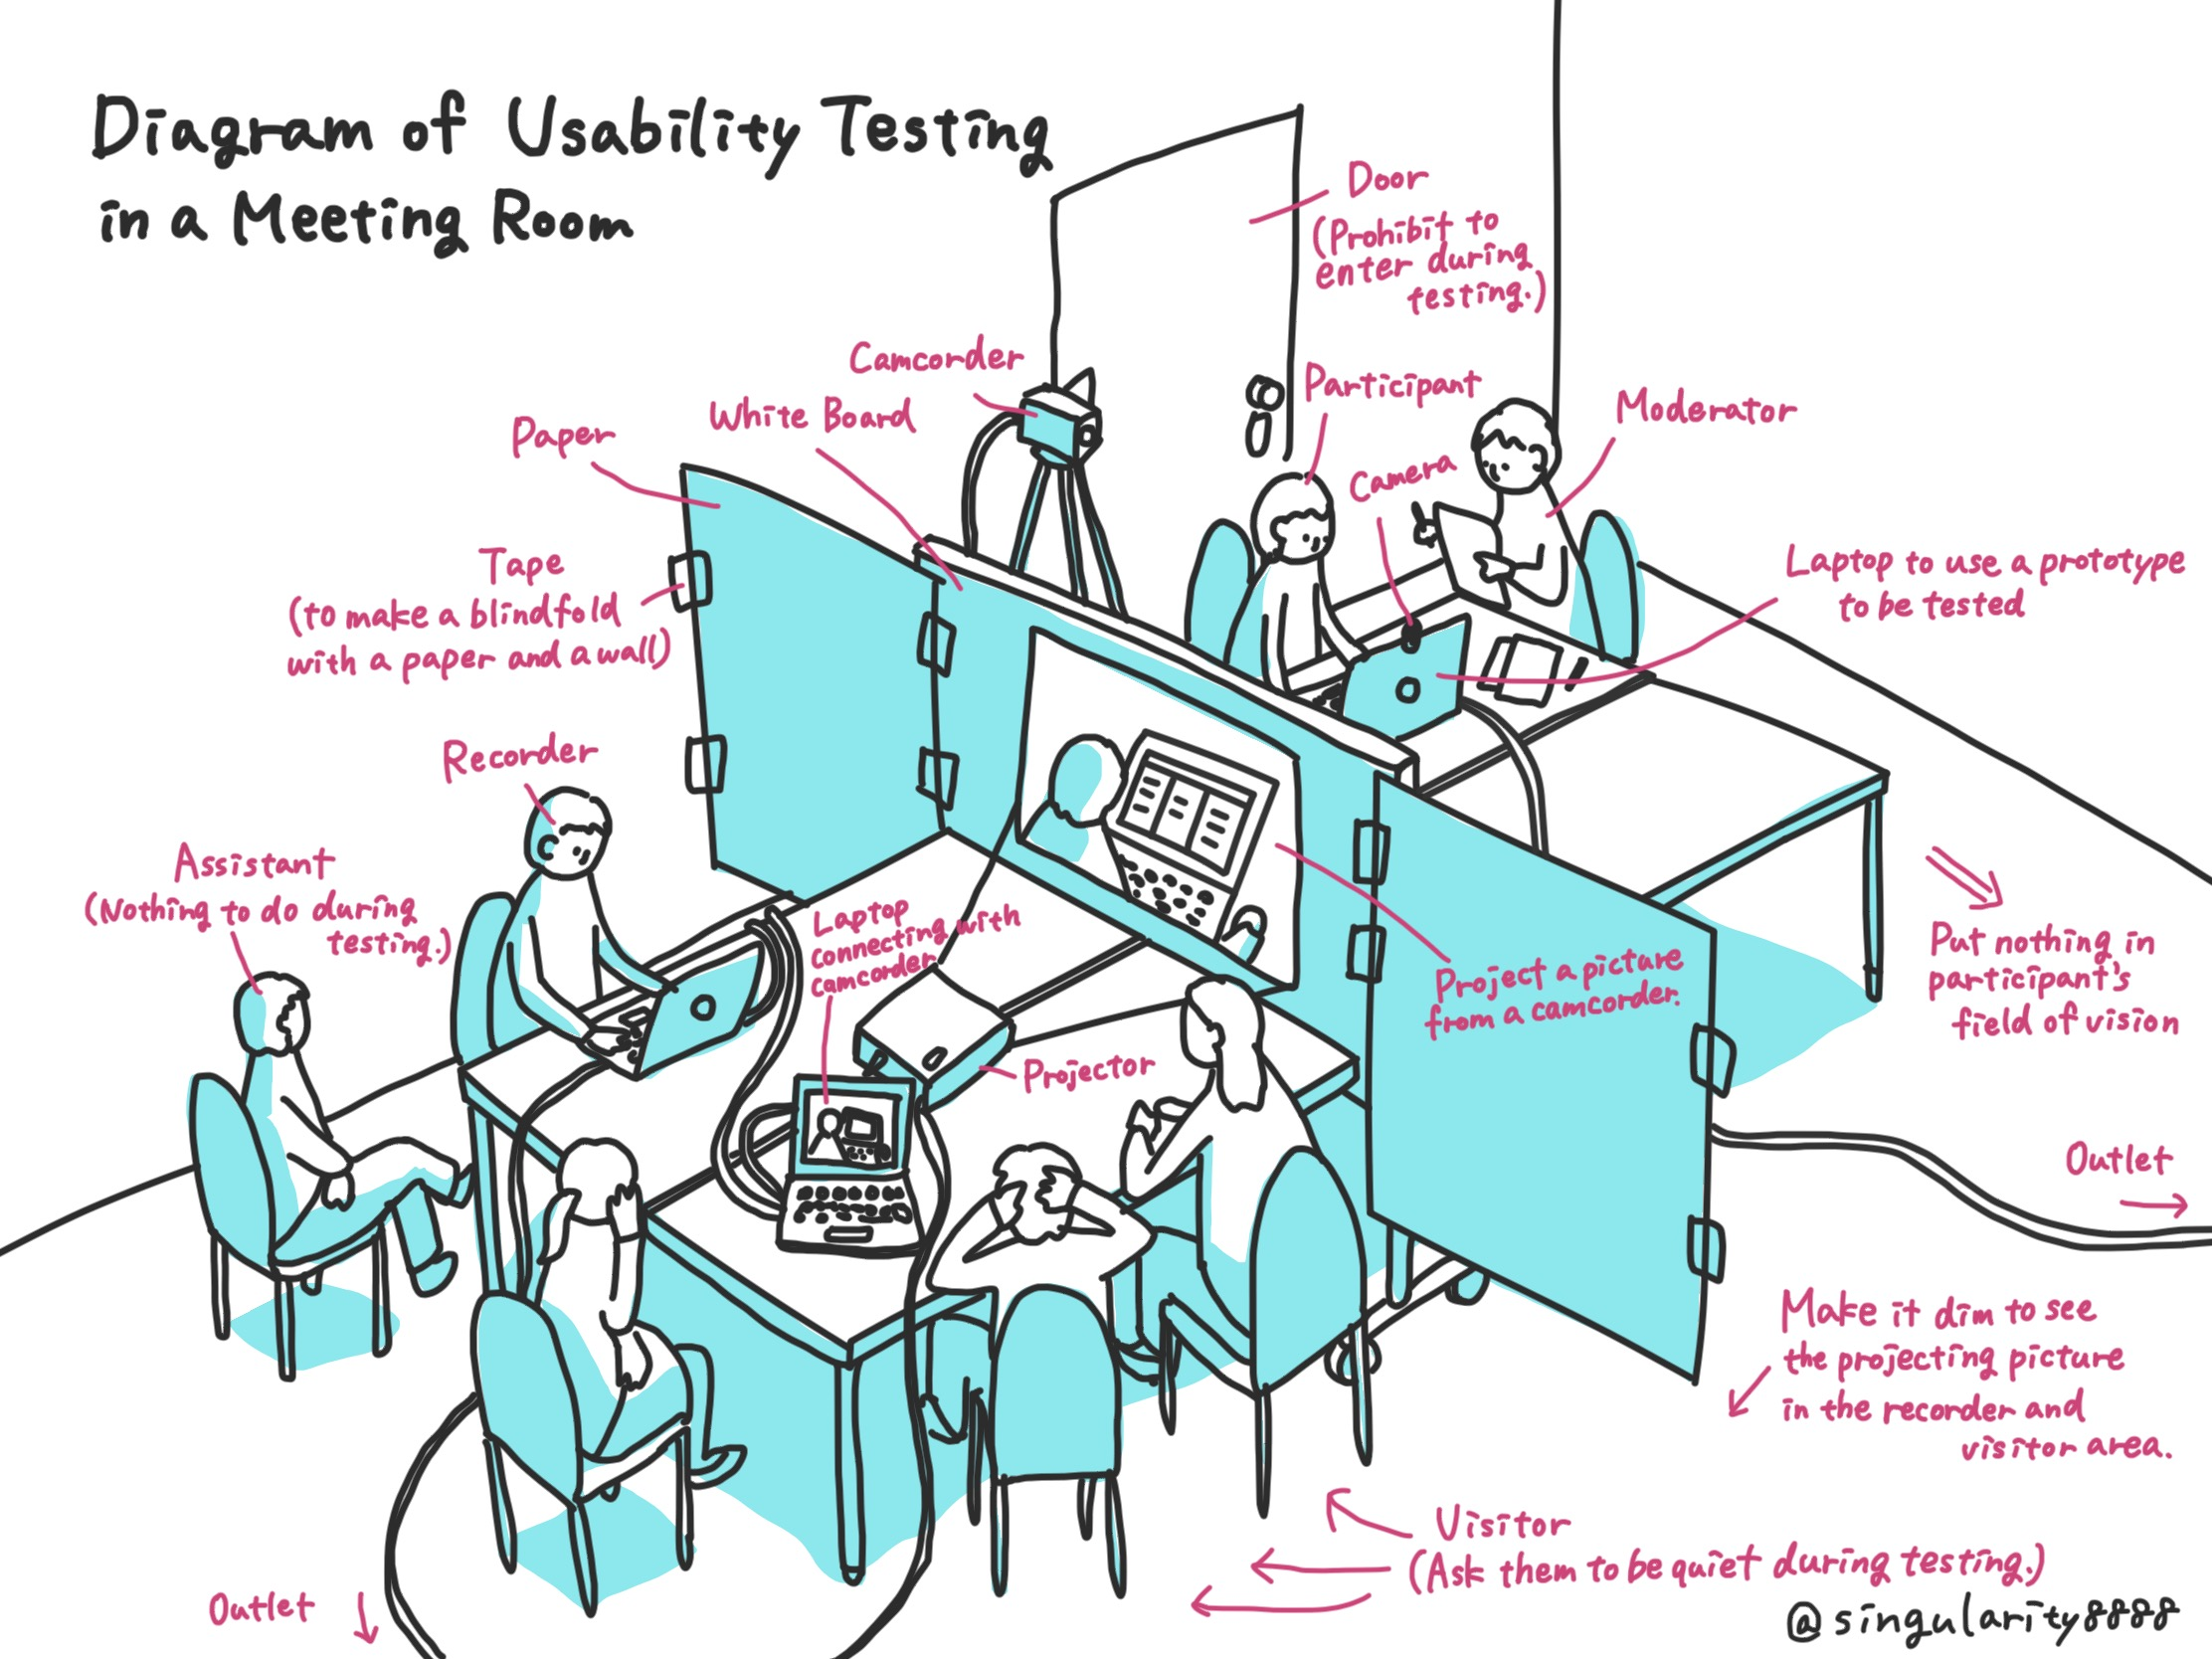 Diagram of Usability Testing in a Meeting Room Image